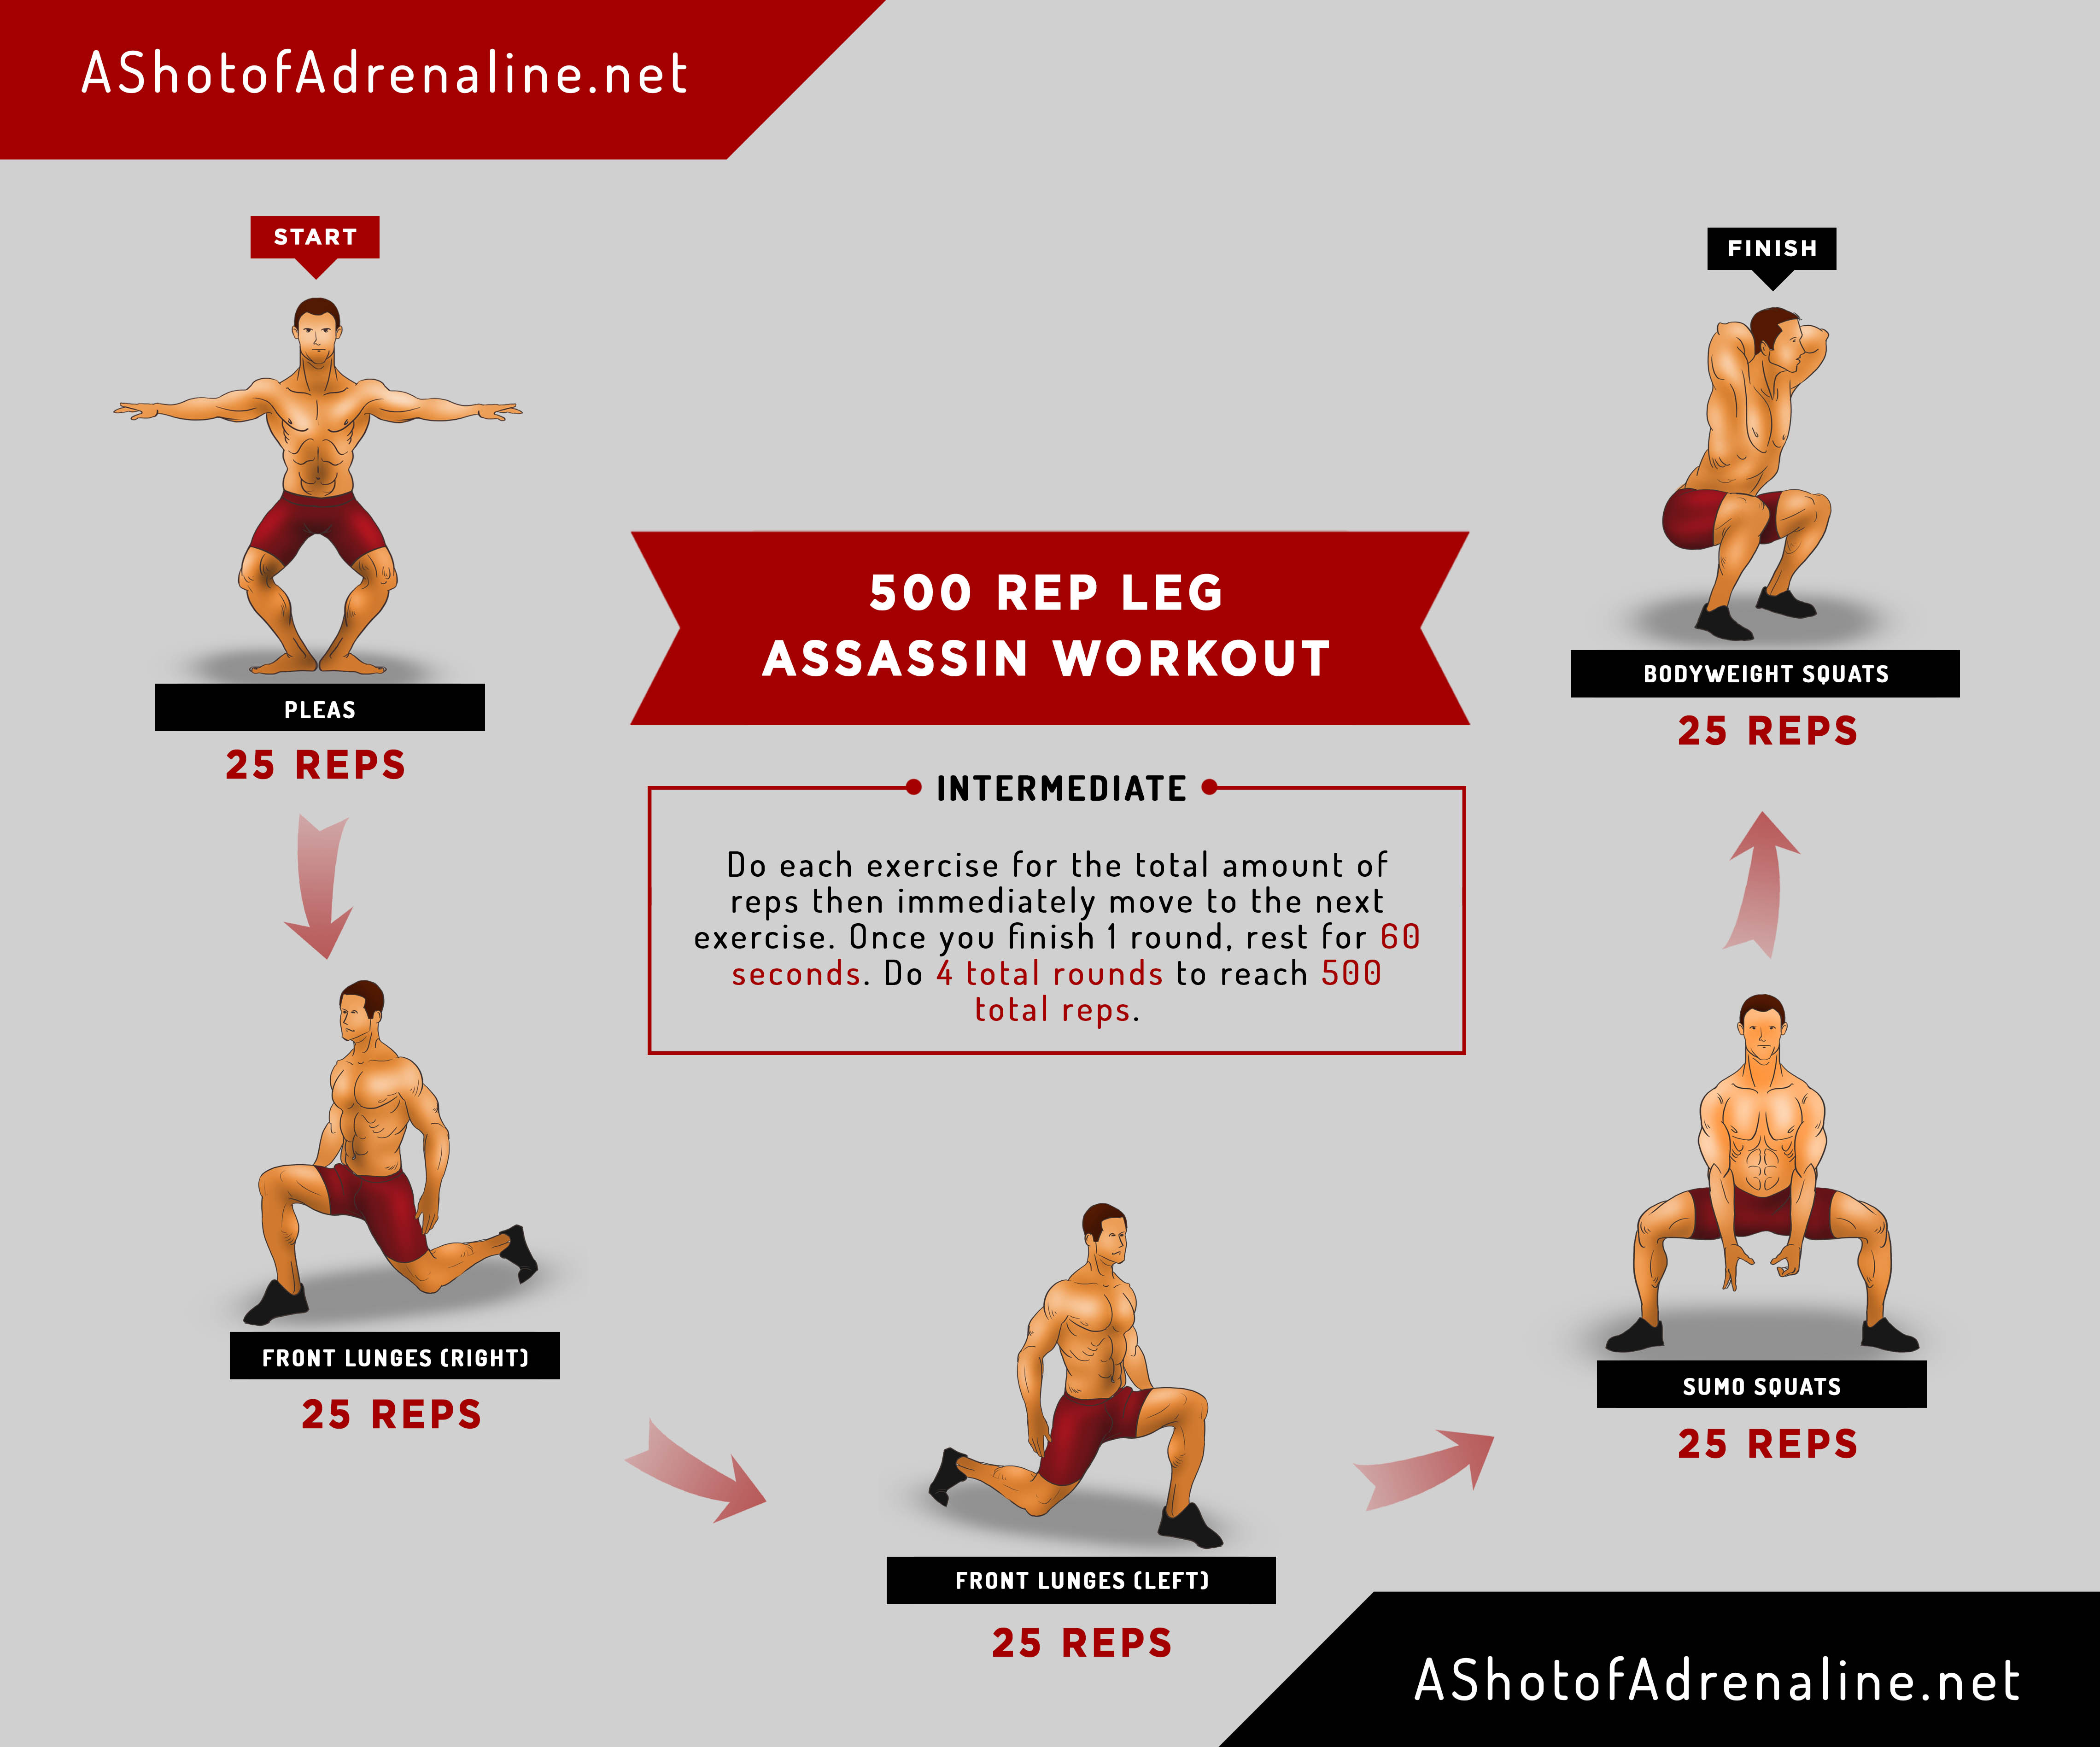 500 Rep Leg Assassin Workout 1